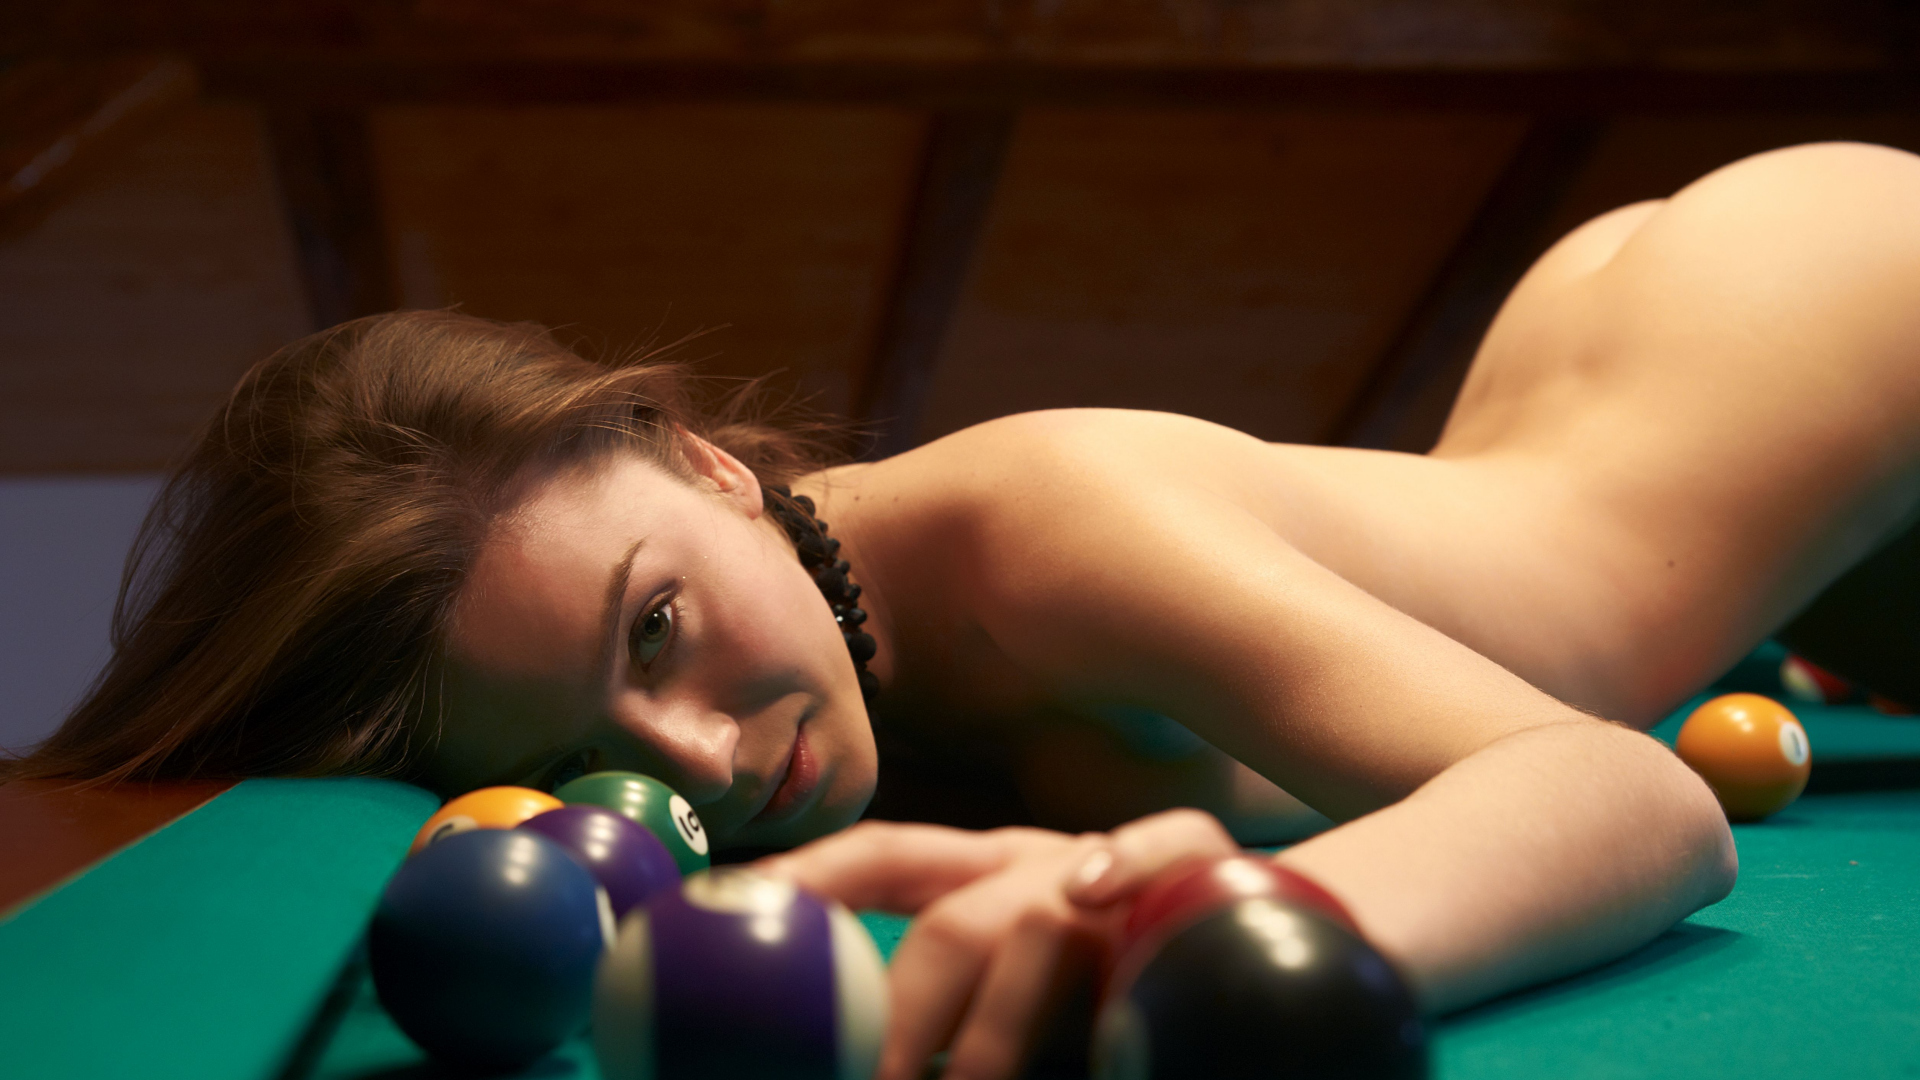 See and save as nude girl plays billiard porn pict